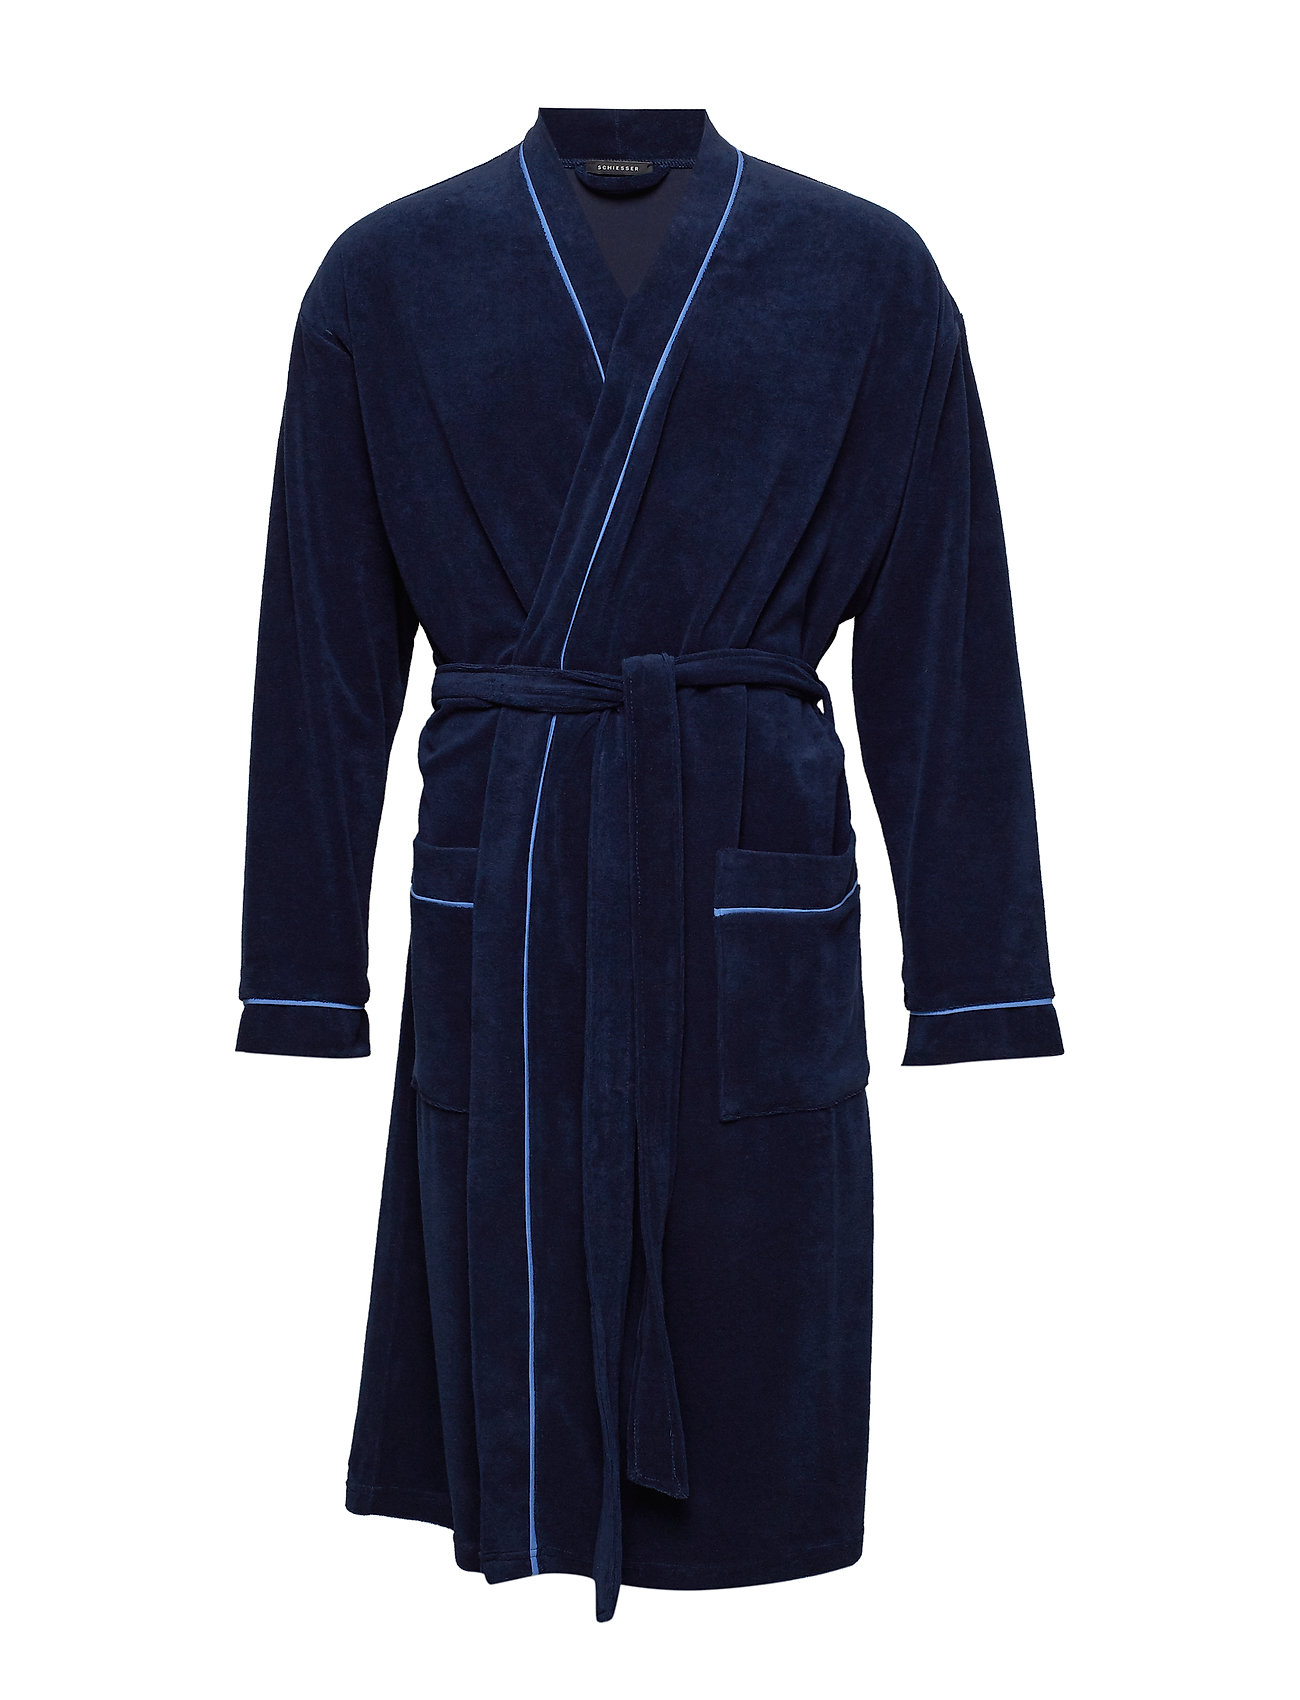 Schiesser Bath Robe - NAVY